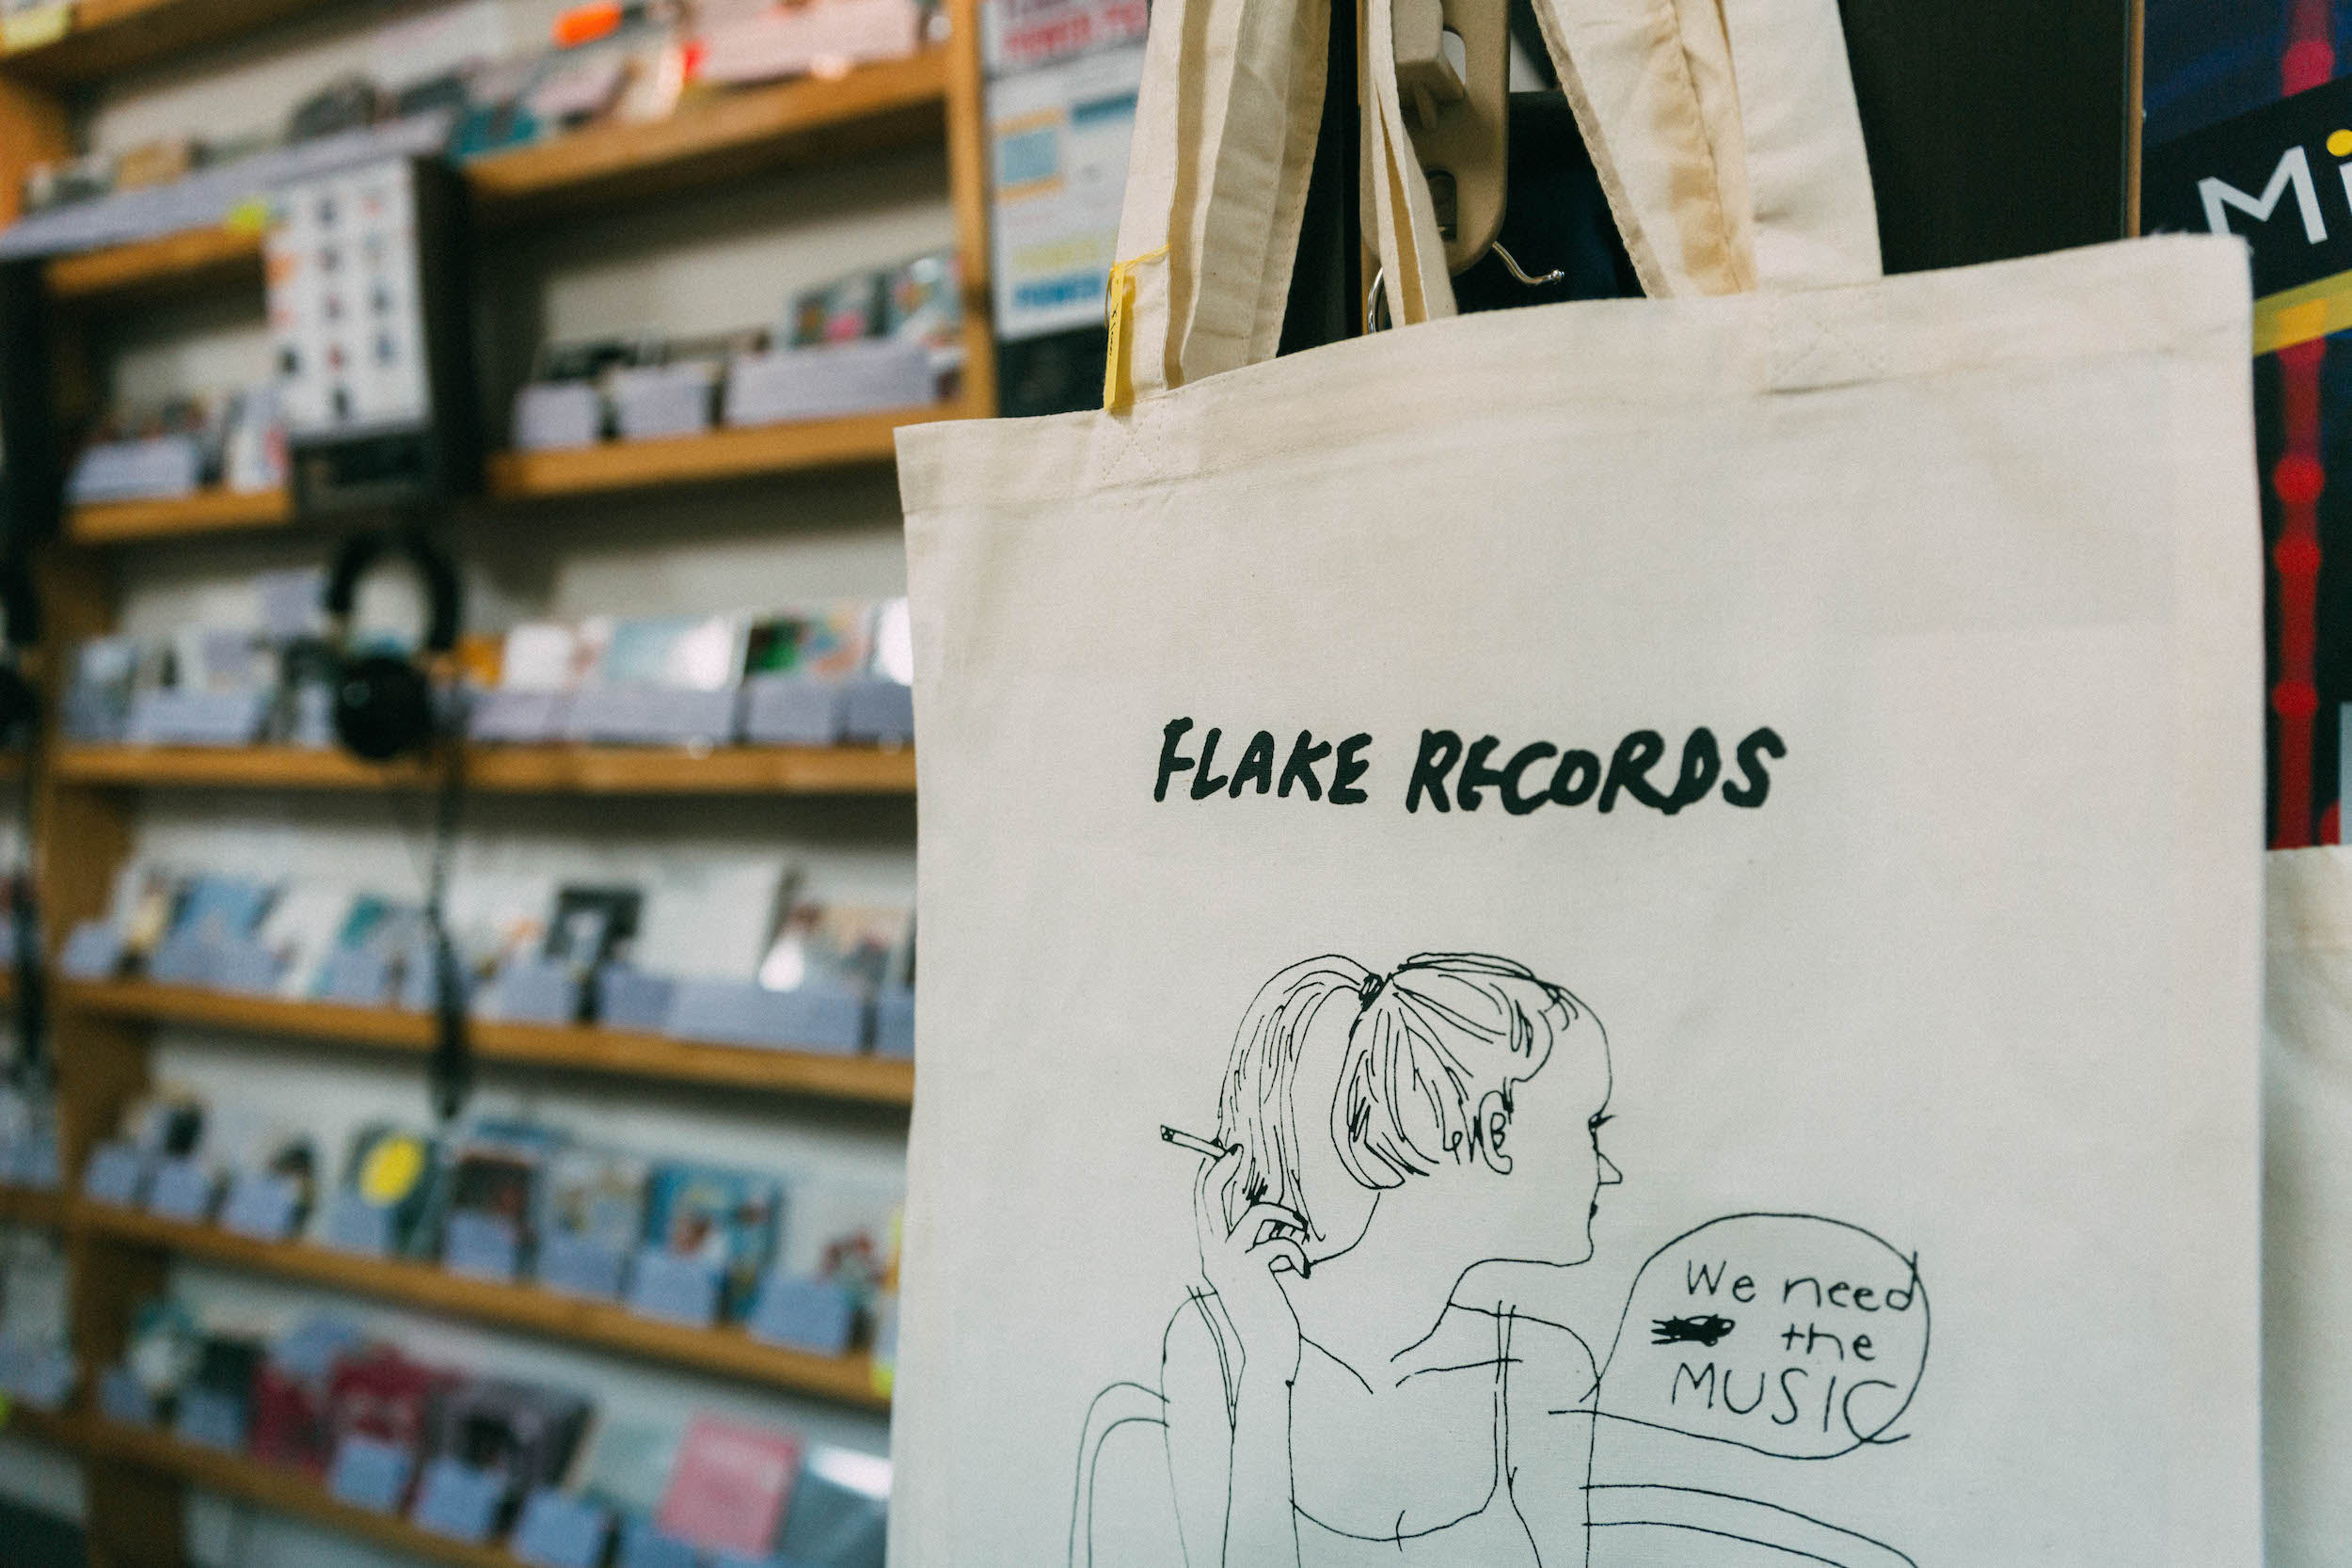 Get To Know Vol.1 FLAKE RECORDS gettoknow-vol1-flake-records-5